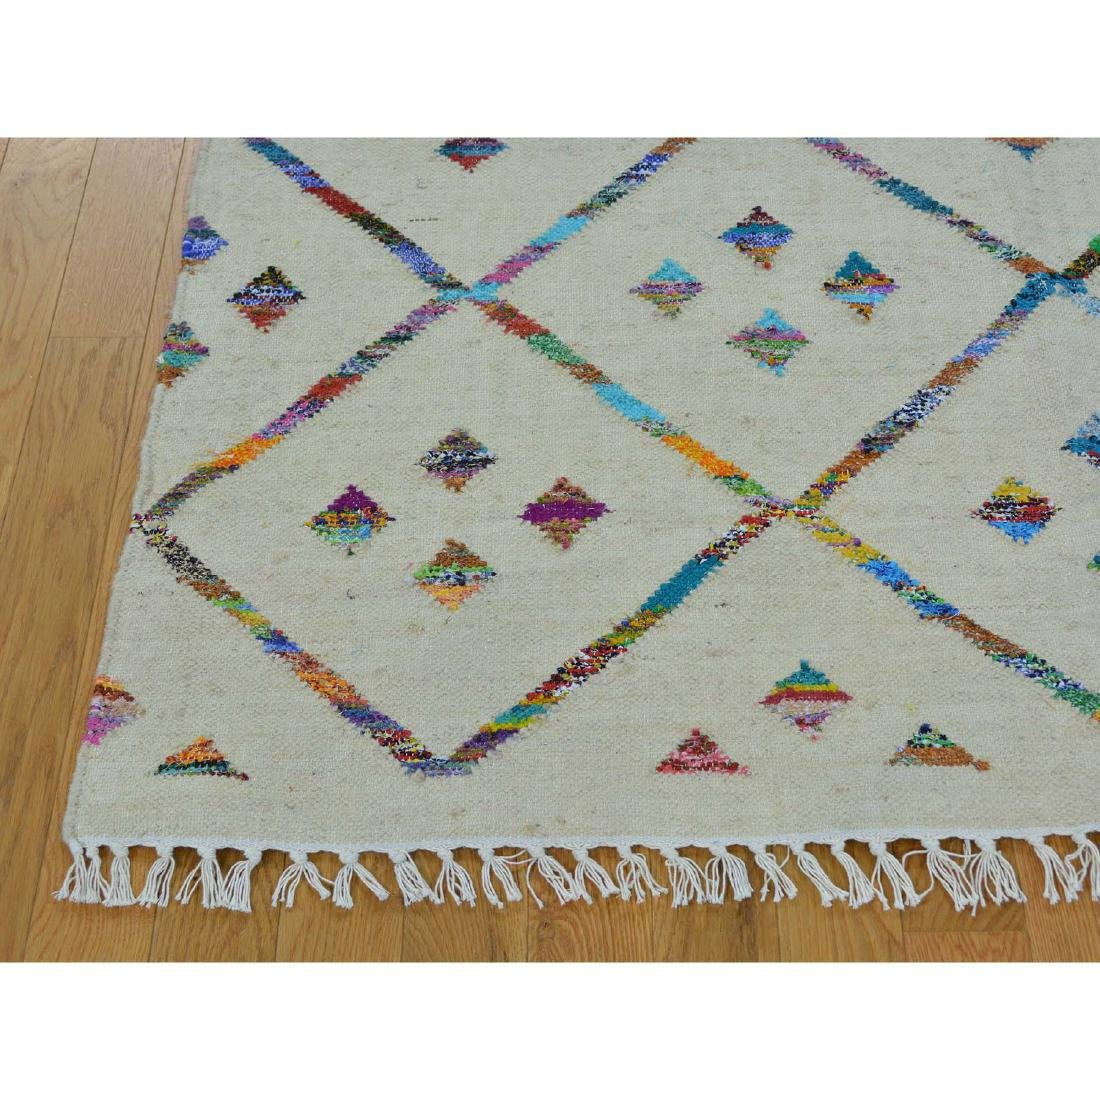 Handmade Geometric Durie Kilim Rug Wool and 5x7.4 - 3